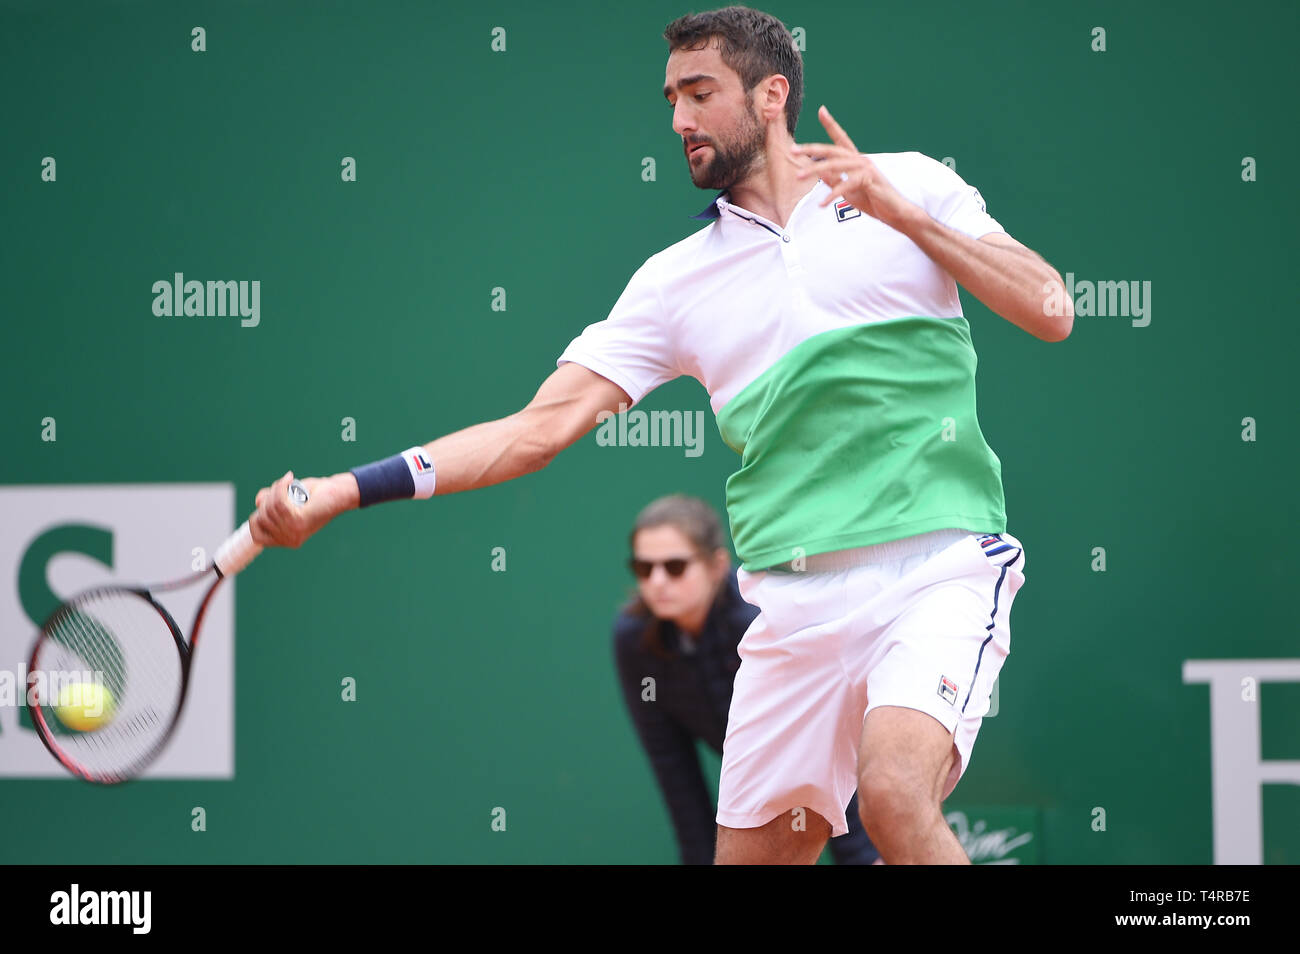 Roquebrune Cap Martin, France. 16th Apr, 2019. Martin Cilic (CRO) Tennis : Men's Singles 2nd Round match during Monte Carlo Masters at Monte Carlo Country Club in Roquebrune Cap Martin, France . Credit: Itaru Chiba/AFLO/Alamy Live News Stock Photo